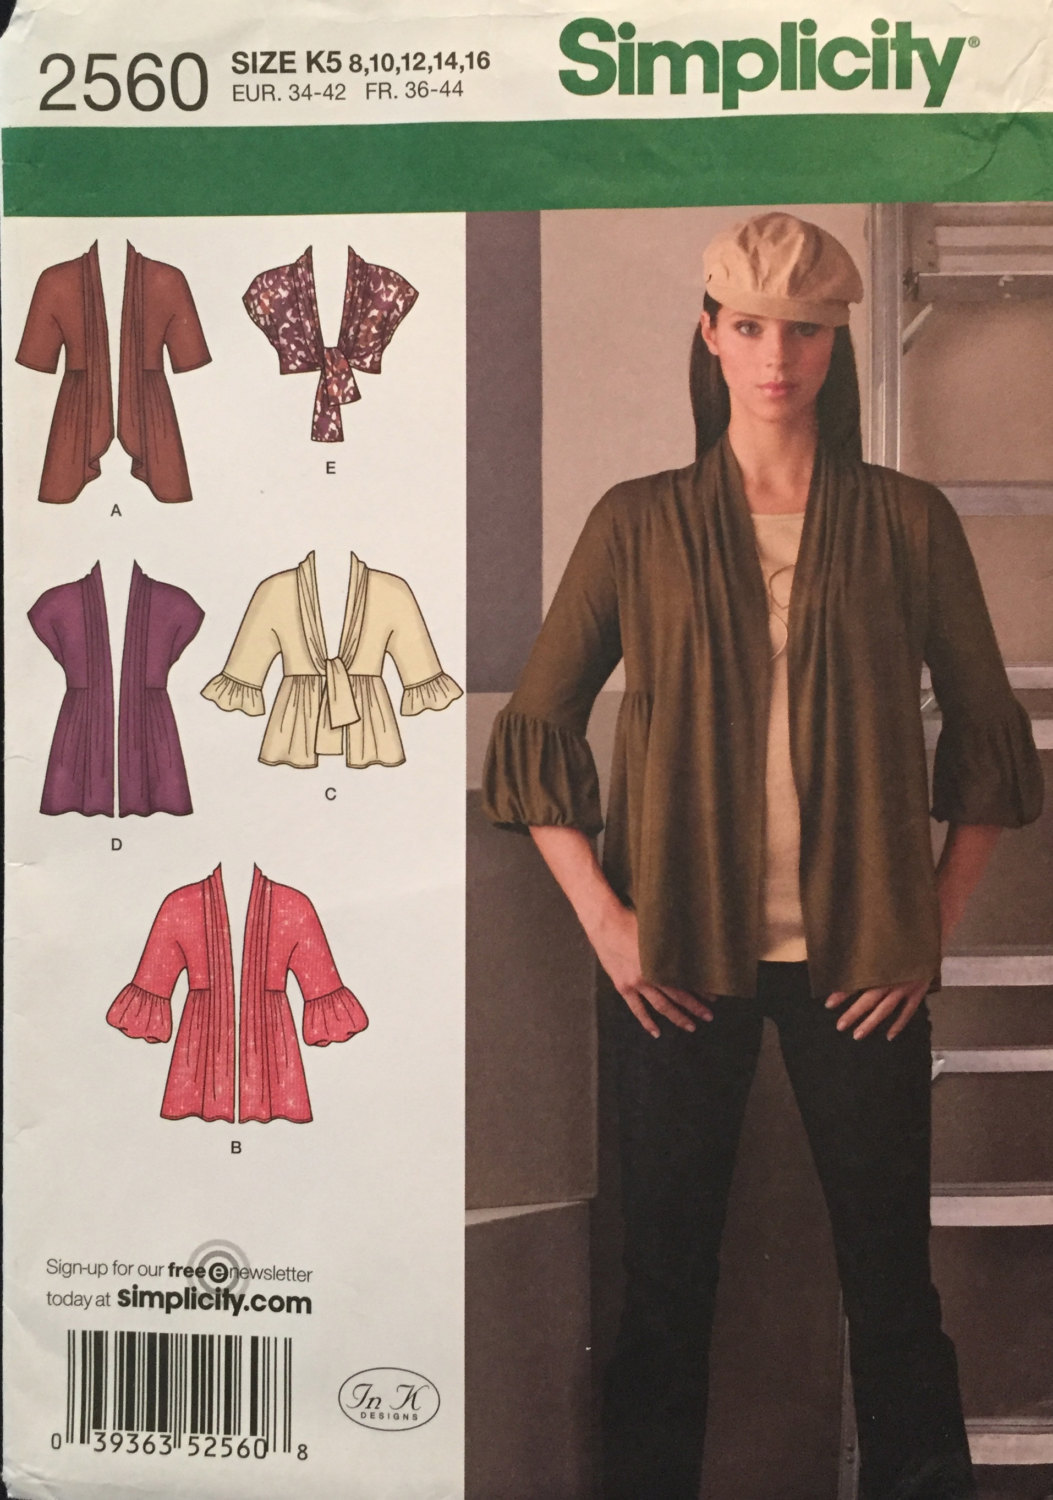 Primary image for Simplicity 2560 Misses Knit Cardigans 5 Options, Pleats,Tie Front & Shrug